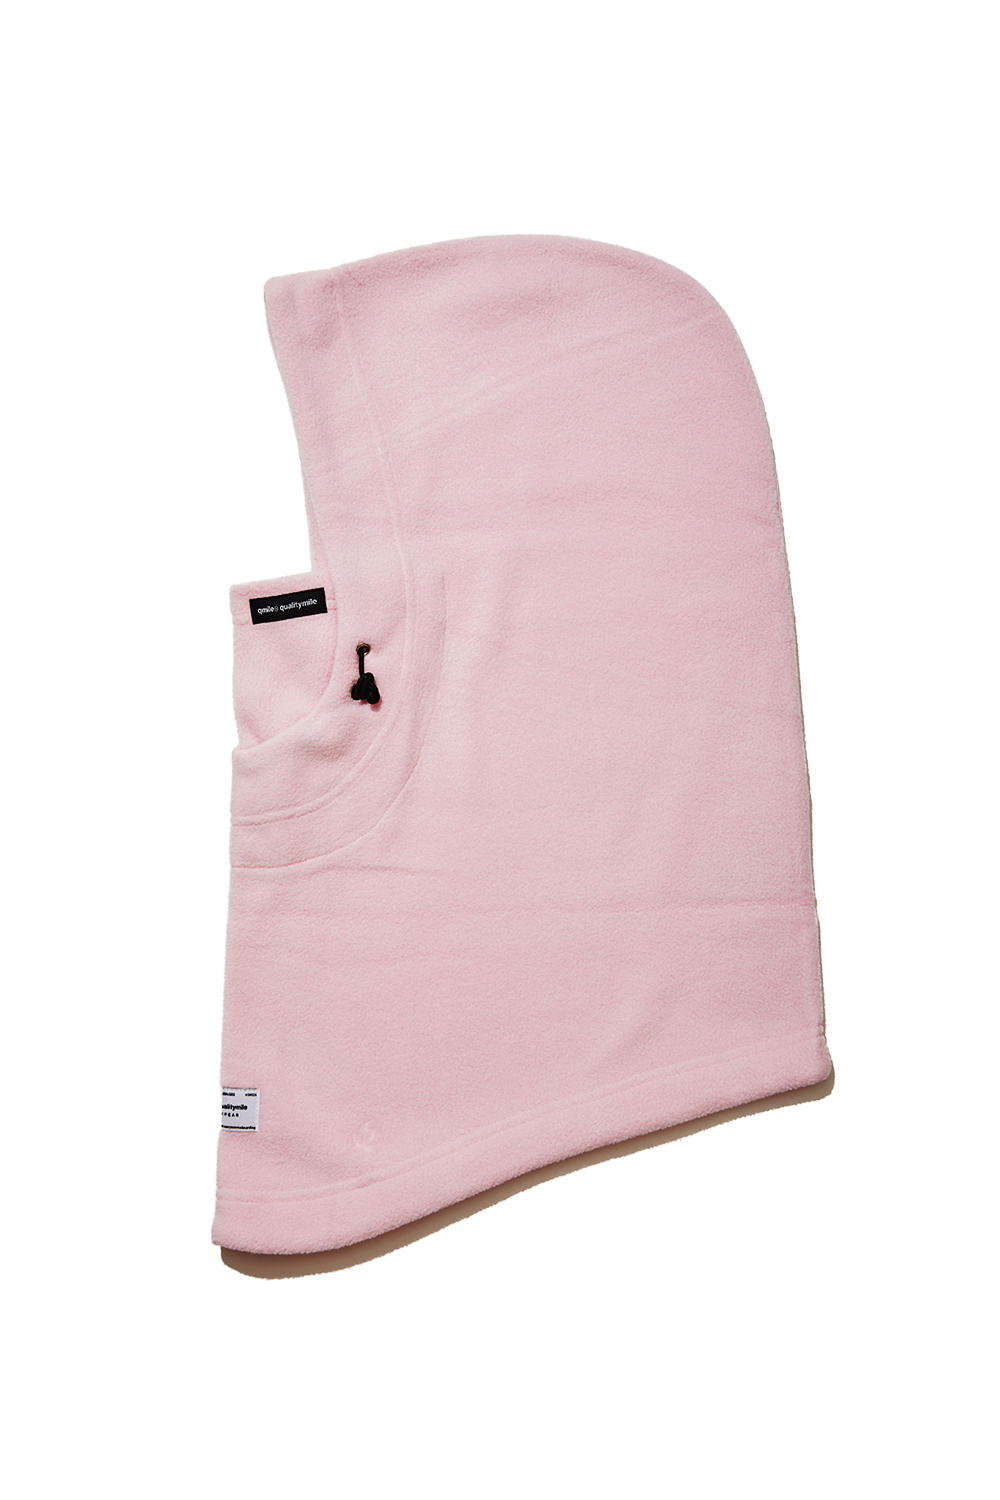 HOOD WARMER / FLEECE | PINK